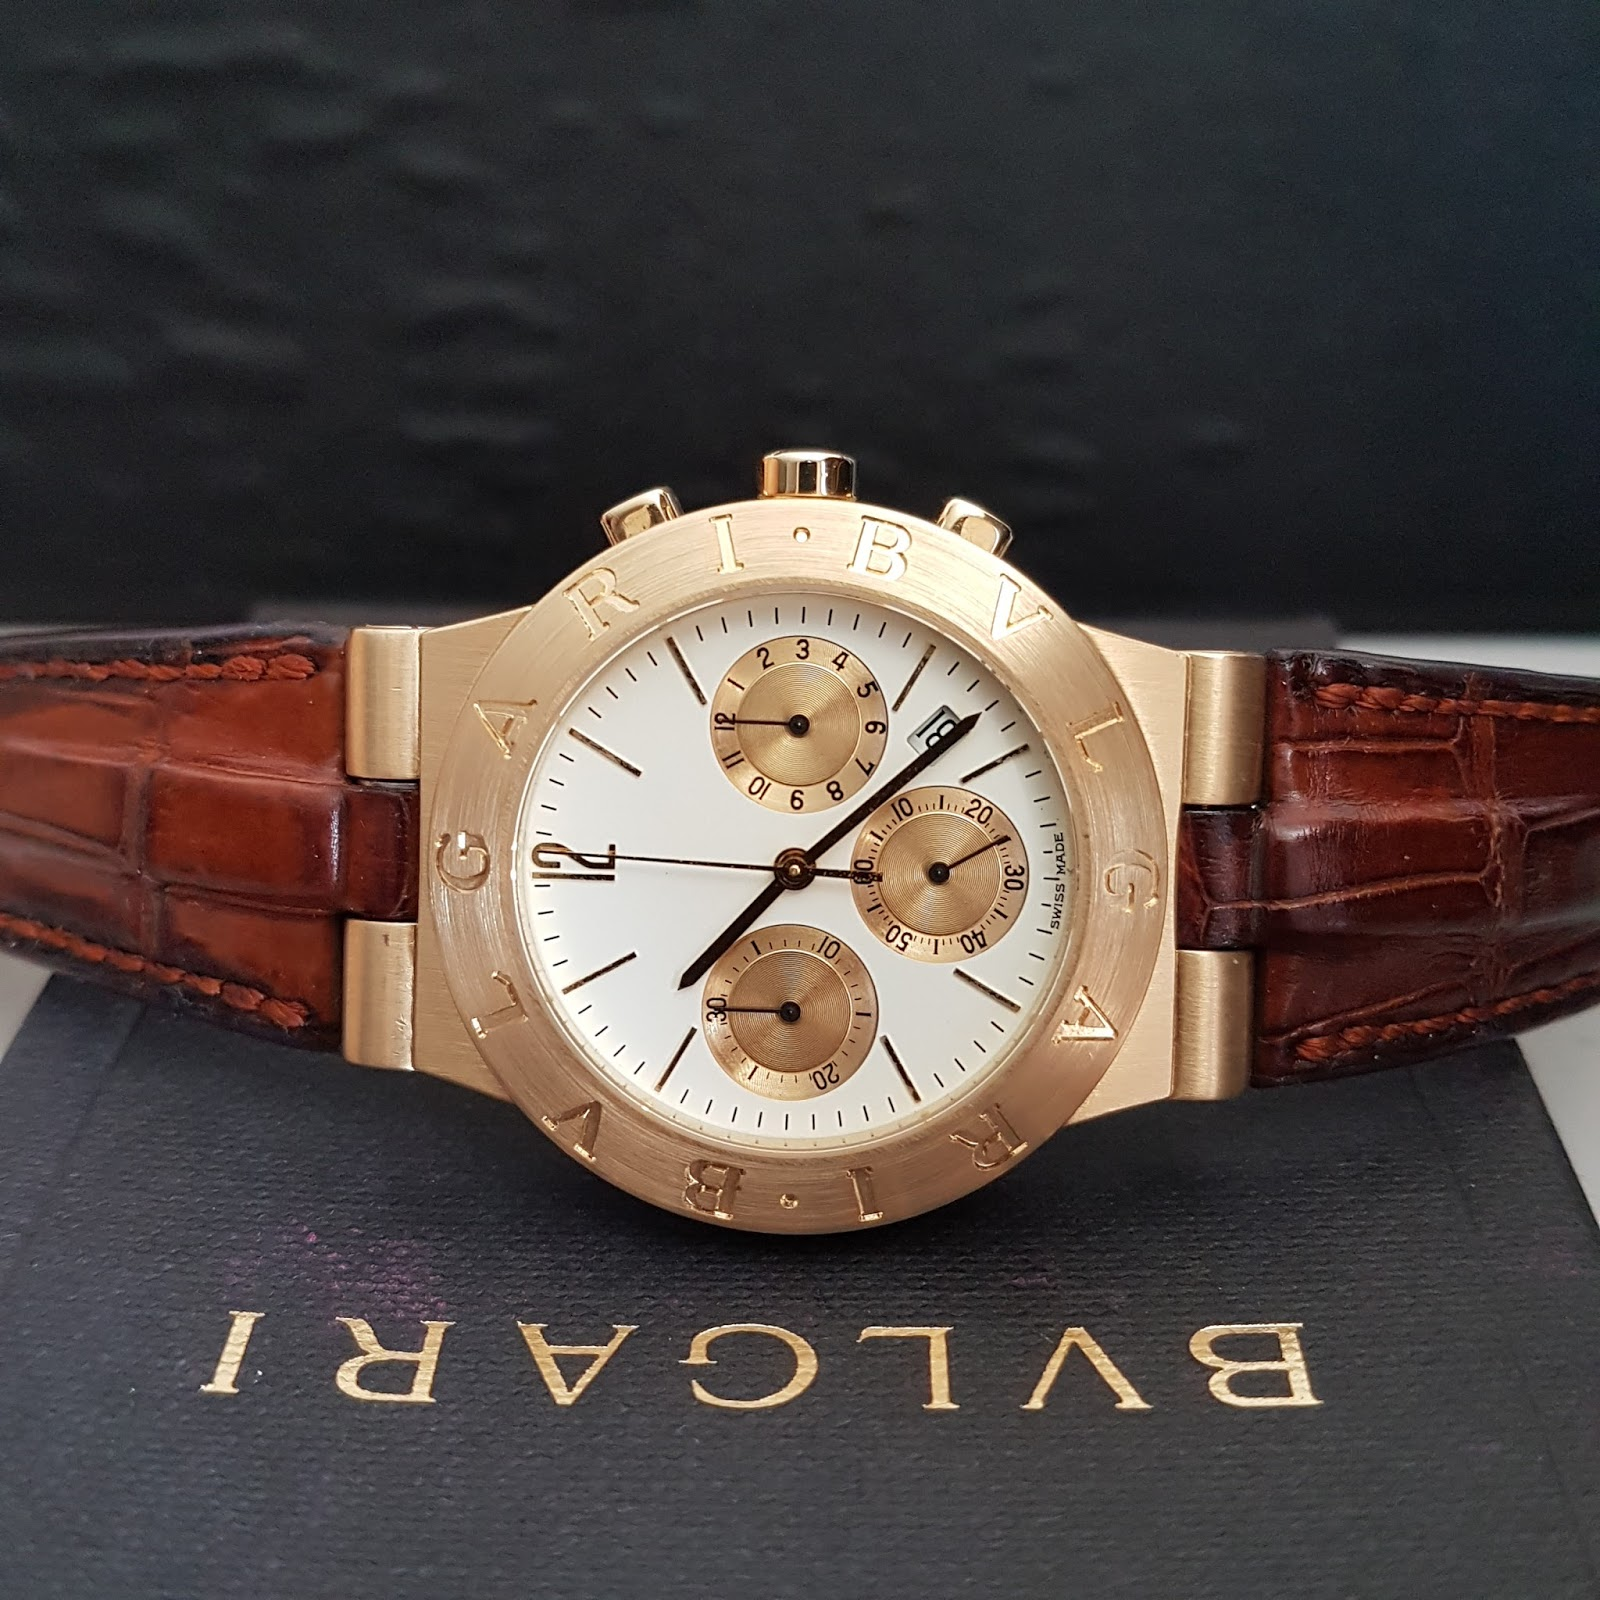 c3e7afa7140 CASE: 18K YELLOW GOLD WITH BULGARI ENGRAVED ON BEZEL STRAP: BROWN CROCODILE  LEATHER WITH 18K YELLOW GOLD TANG BUCKLE GLASS: SAPPHIRE CRYSTAL